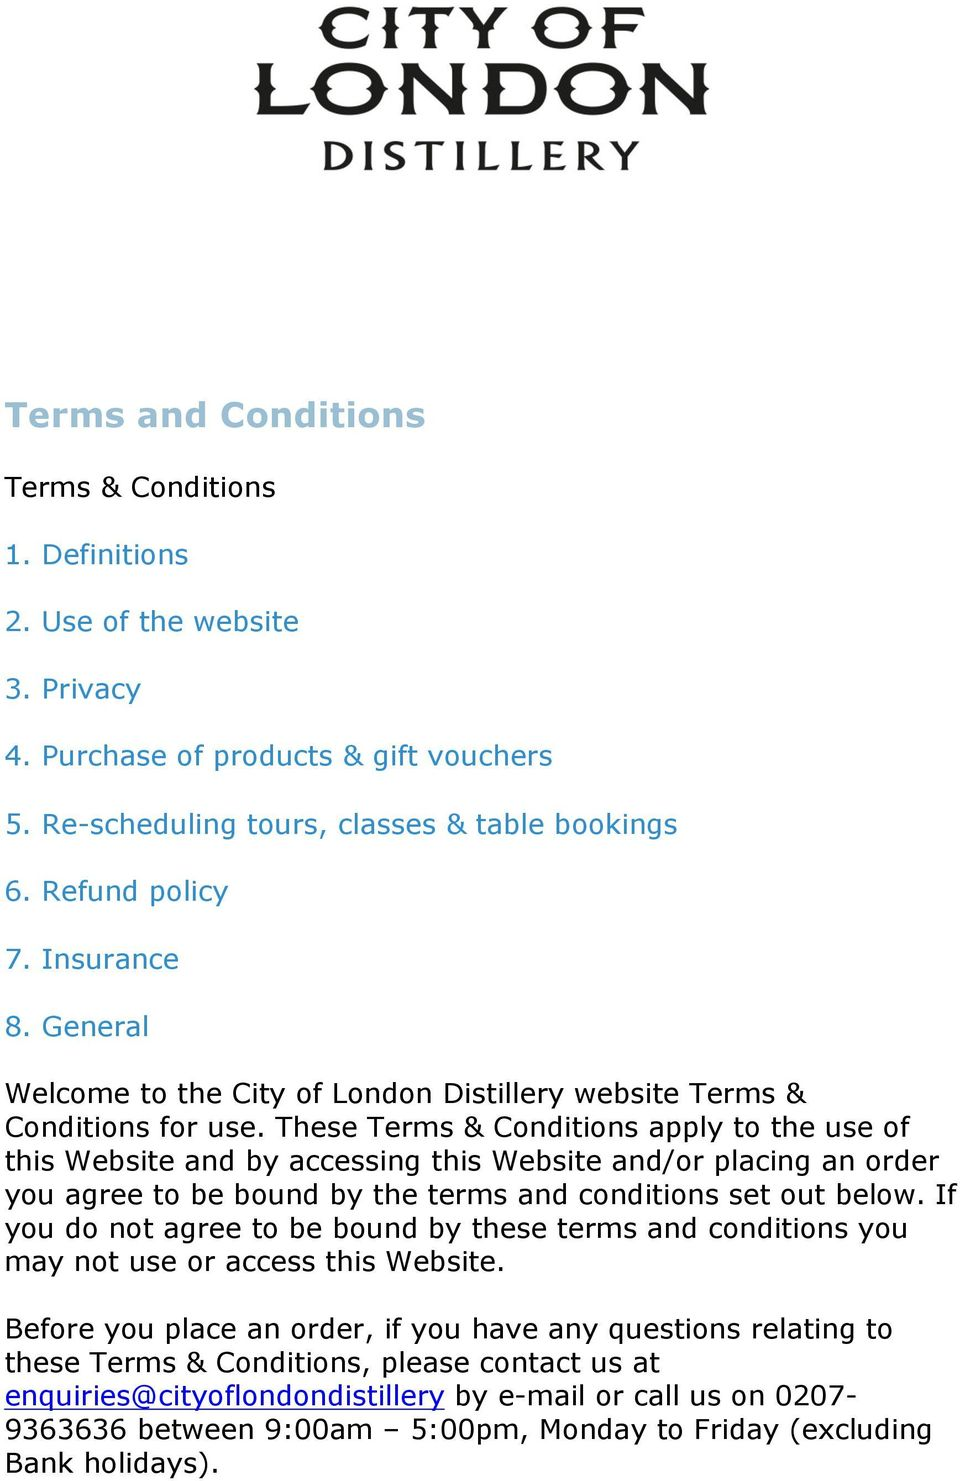 These Terms & Conditions apply to the use of this Website and by accessing this Website and/or placing an order you agree to be bound by the terms and conditions set out below.